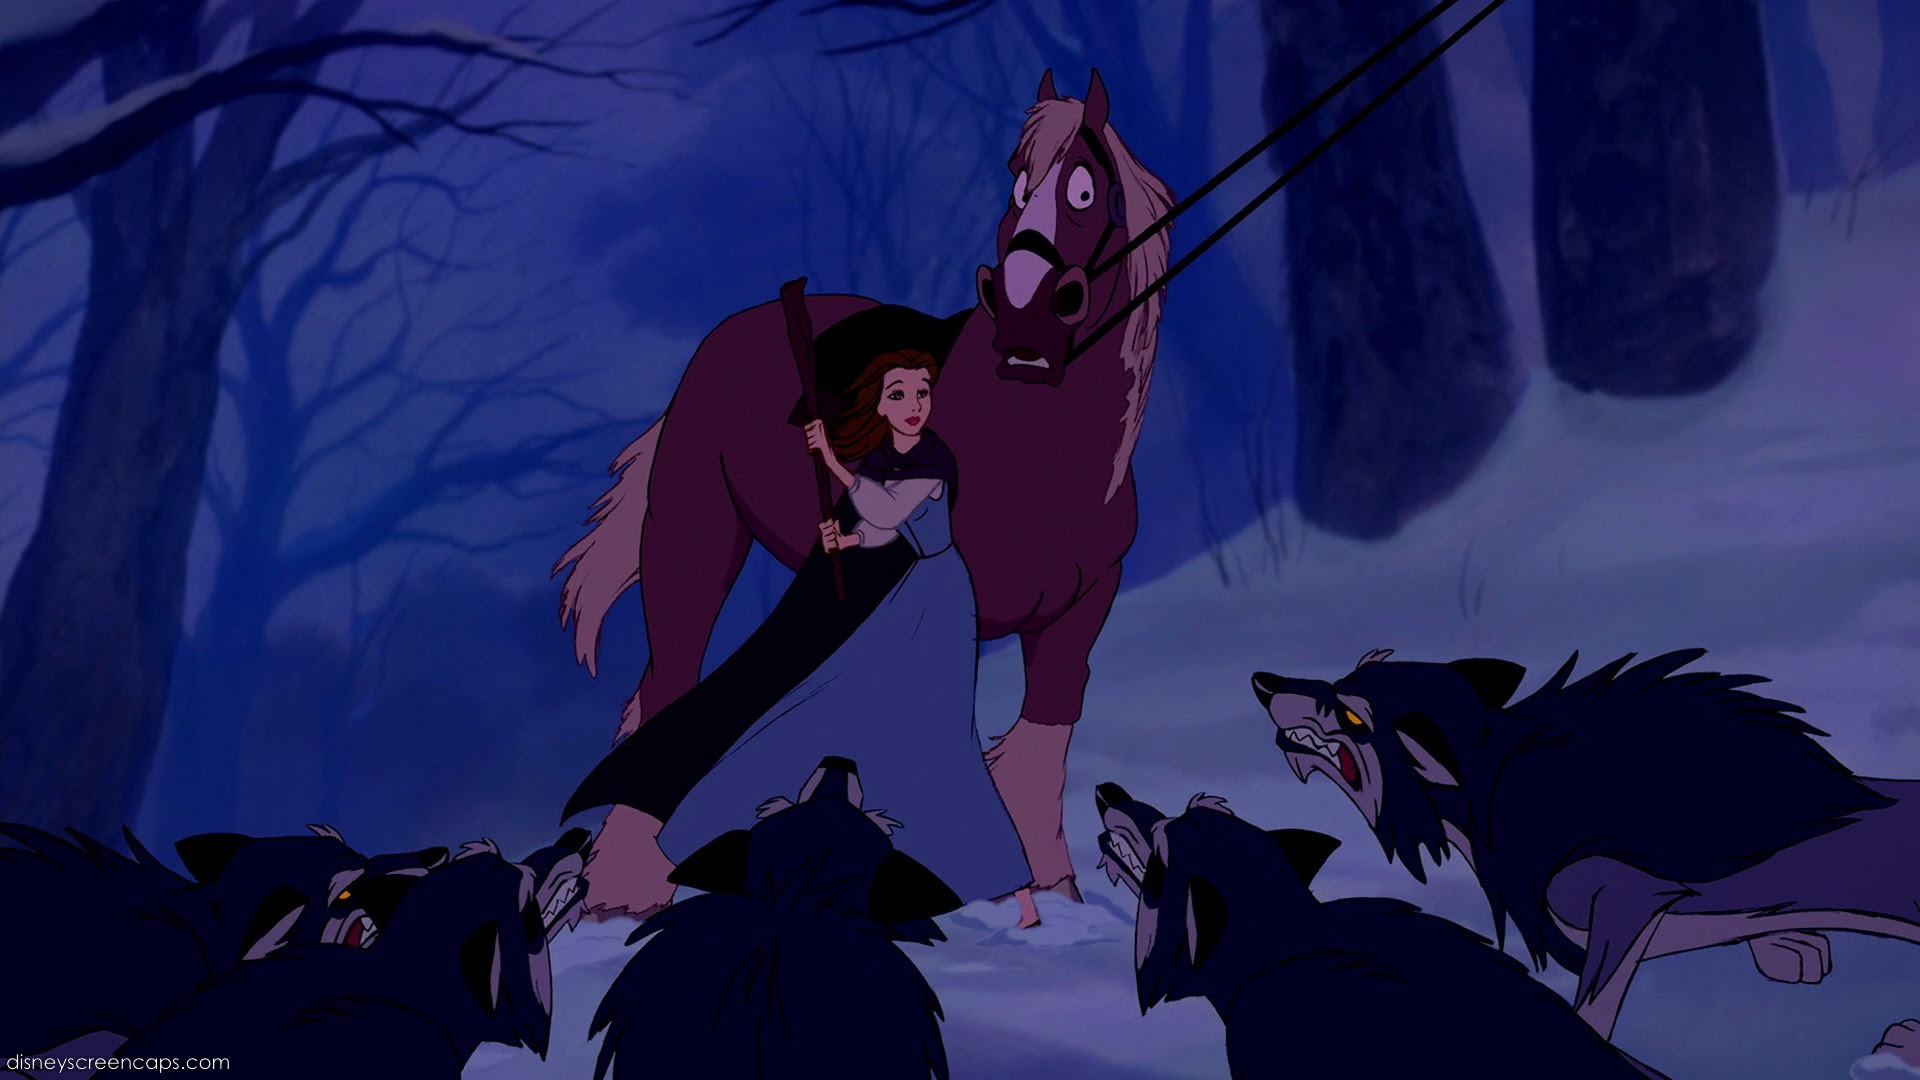 http://img1.wikia.nocookie.net/__cb20120105235000/disney/images/7/77/Belle-Wolves-(Beauty_and_the_Beast).jpg